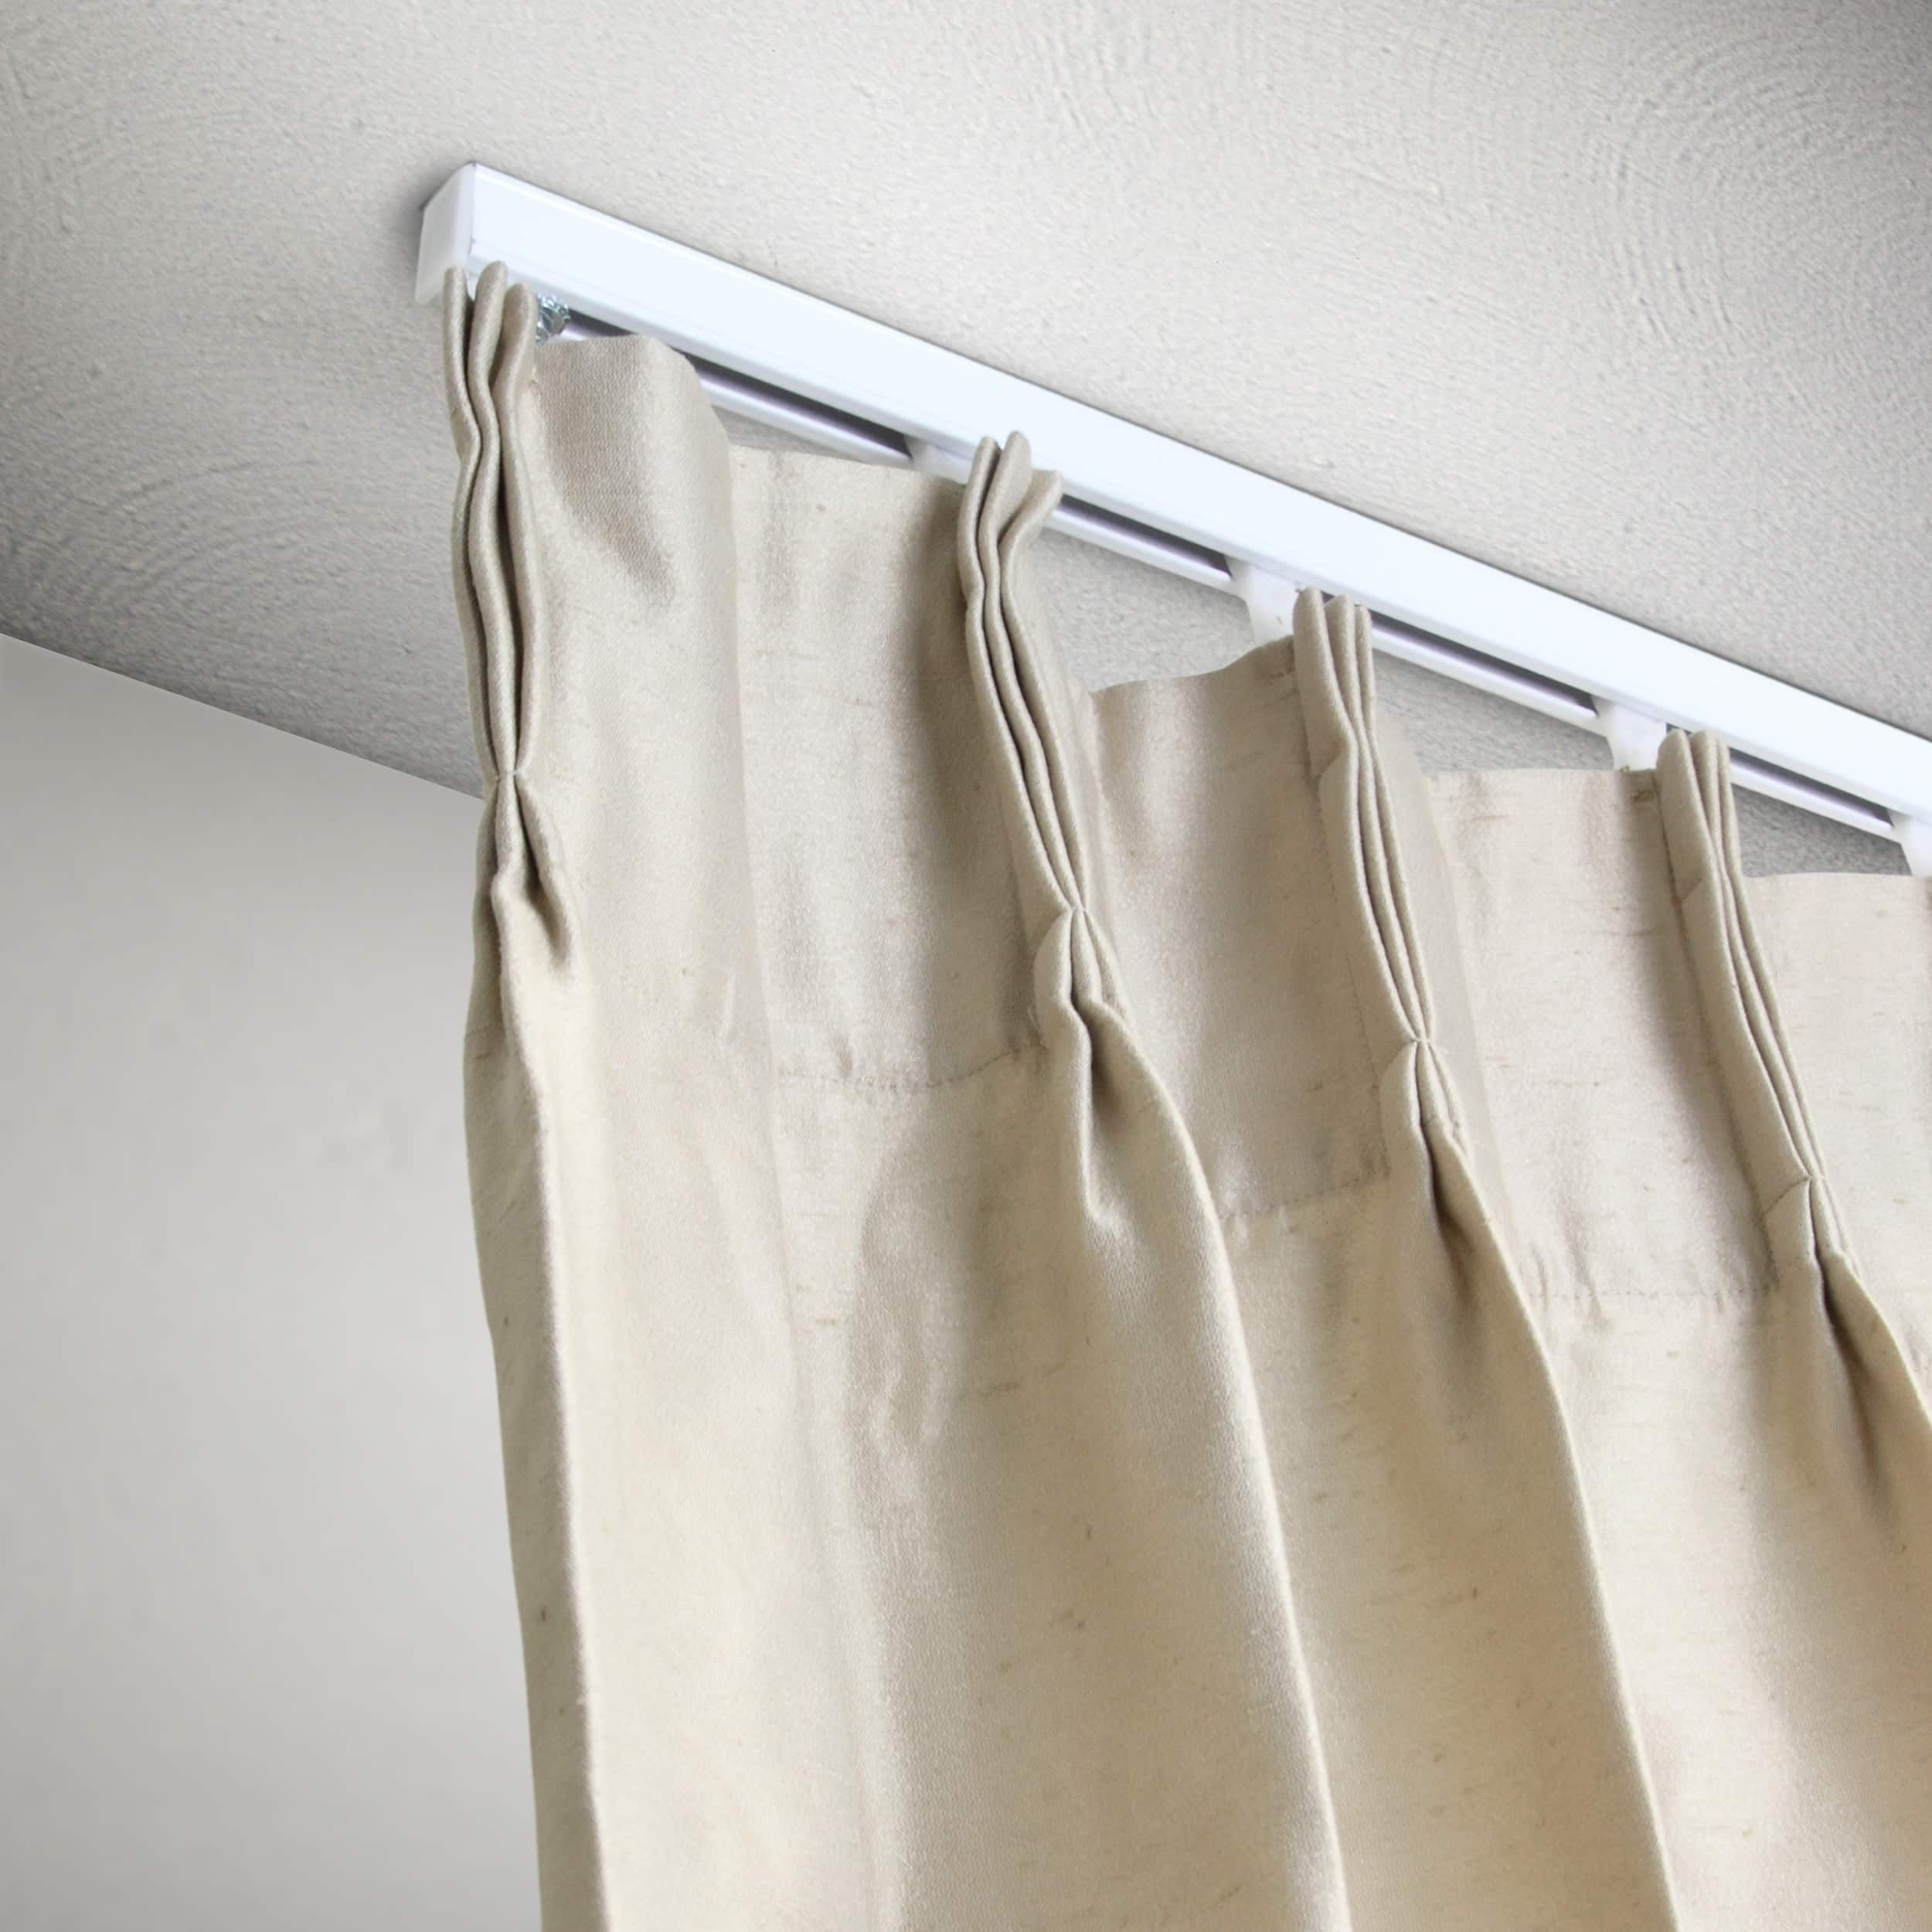 Instyledesign Heavy Duty White Ceiling Curtain Track